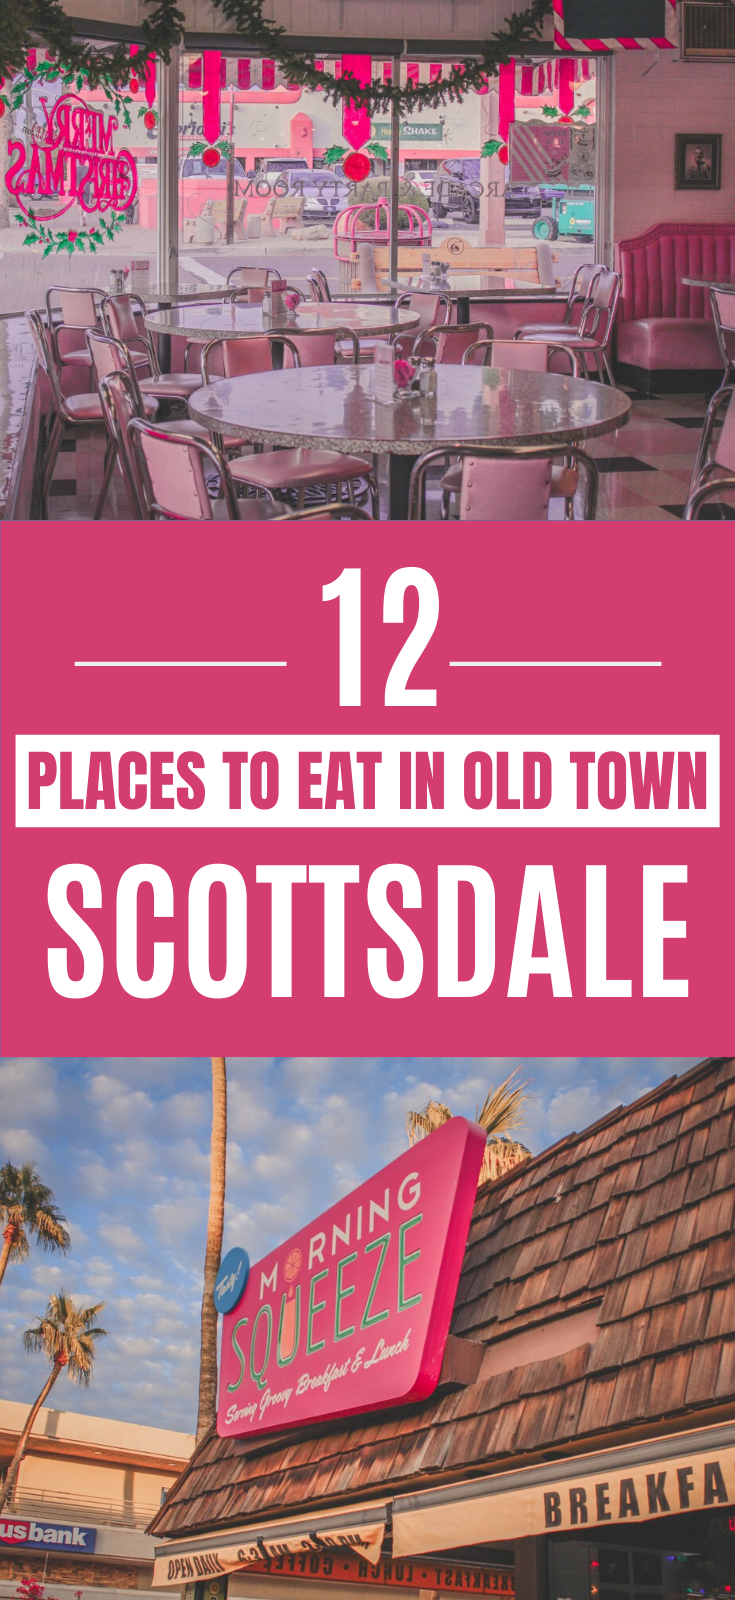 12 Best Places To Eat In Old Town Scottsdale Scottsdale Restaurants Arizona Restaurants Old Town Scottsdale